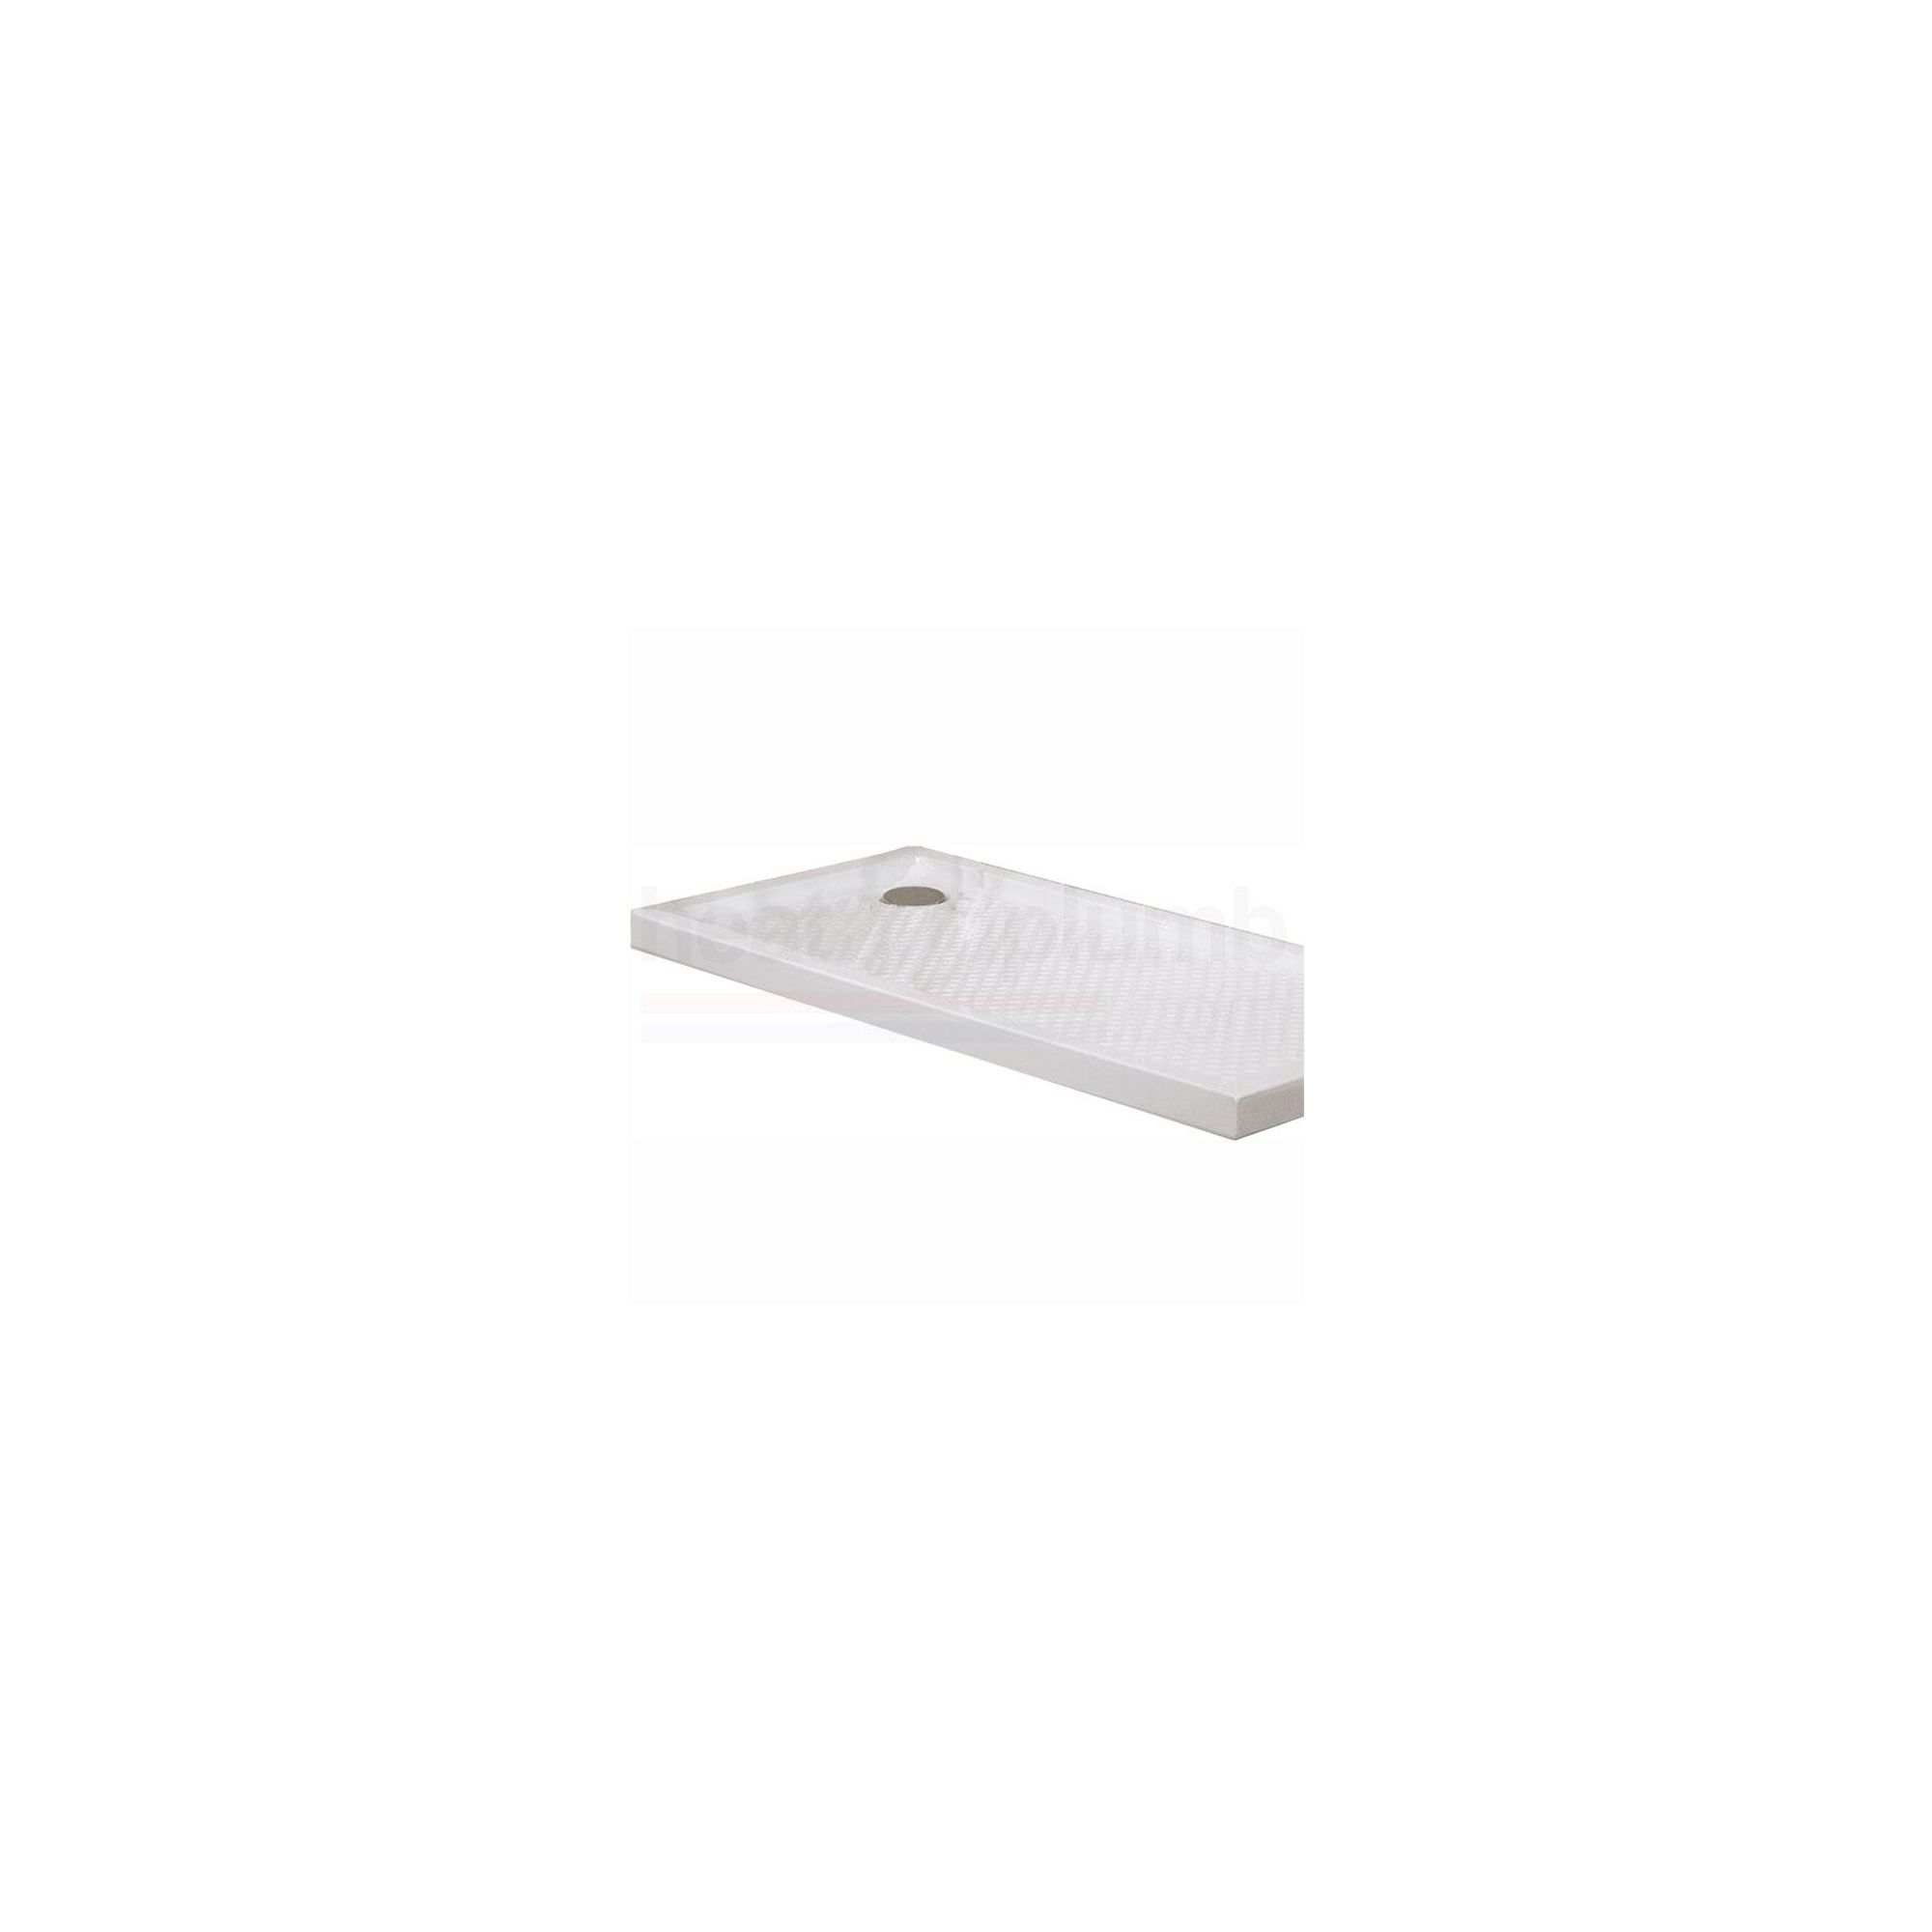 AKW Keppel Rectangular Shower Tray 1500mm x 700mm at Tesco Direct